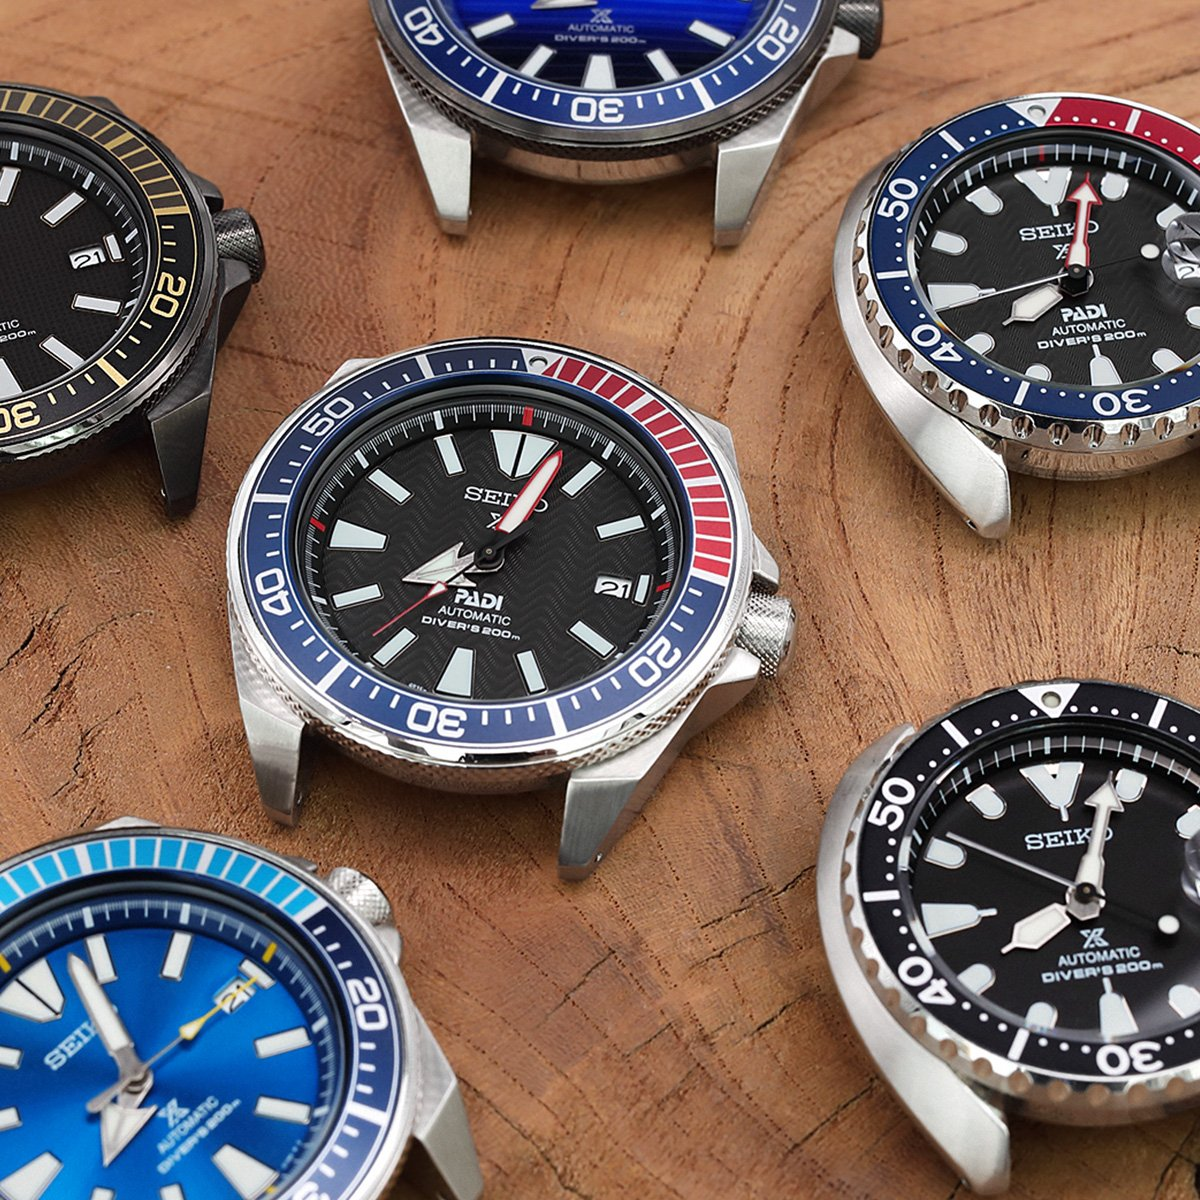 On the trail of great Seiko watch movements... 4R35